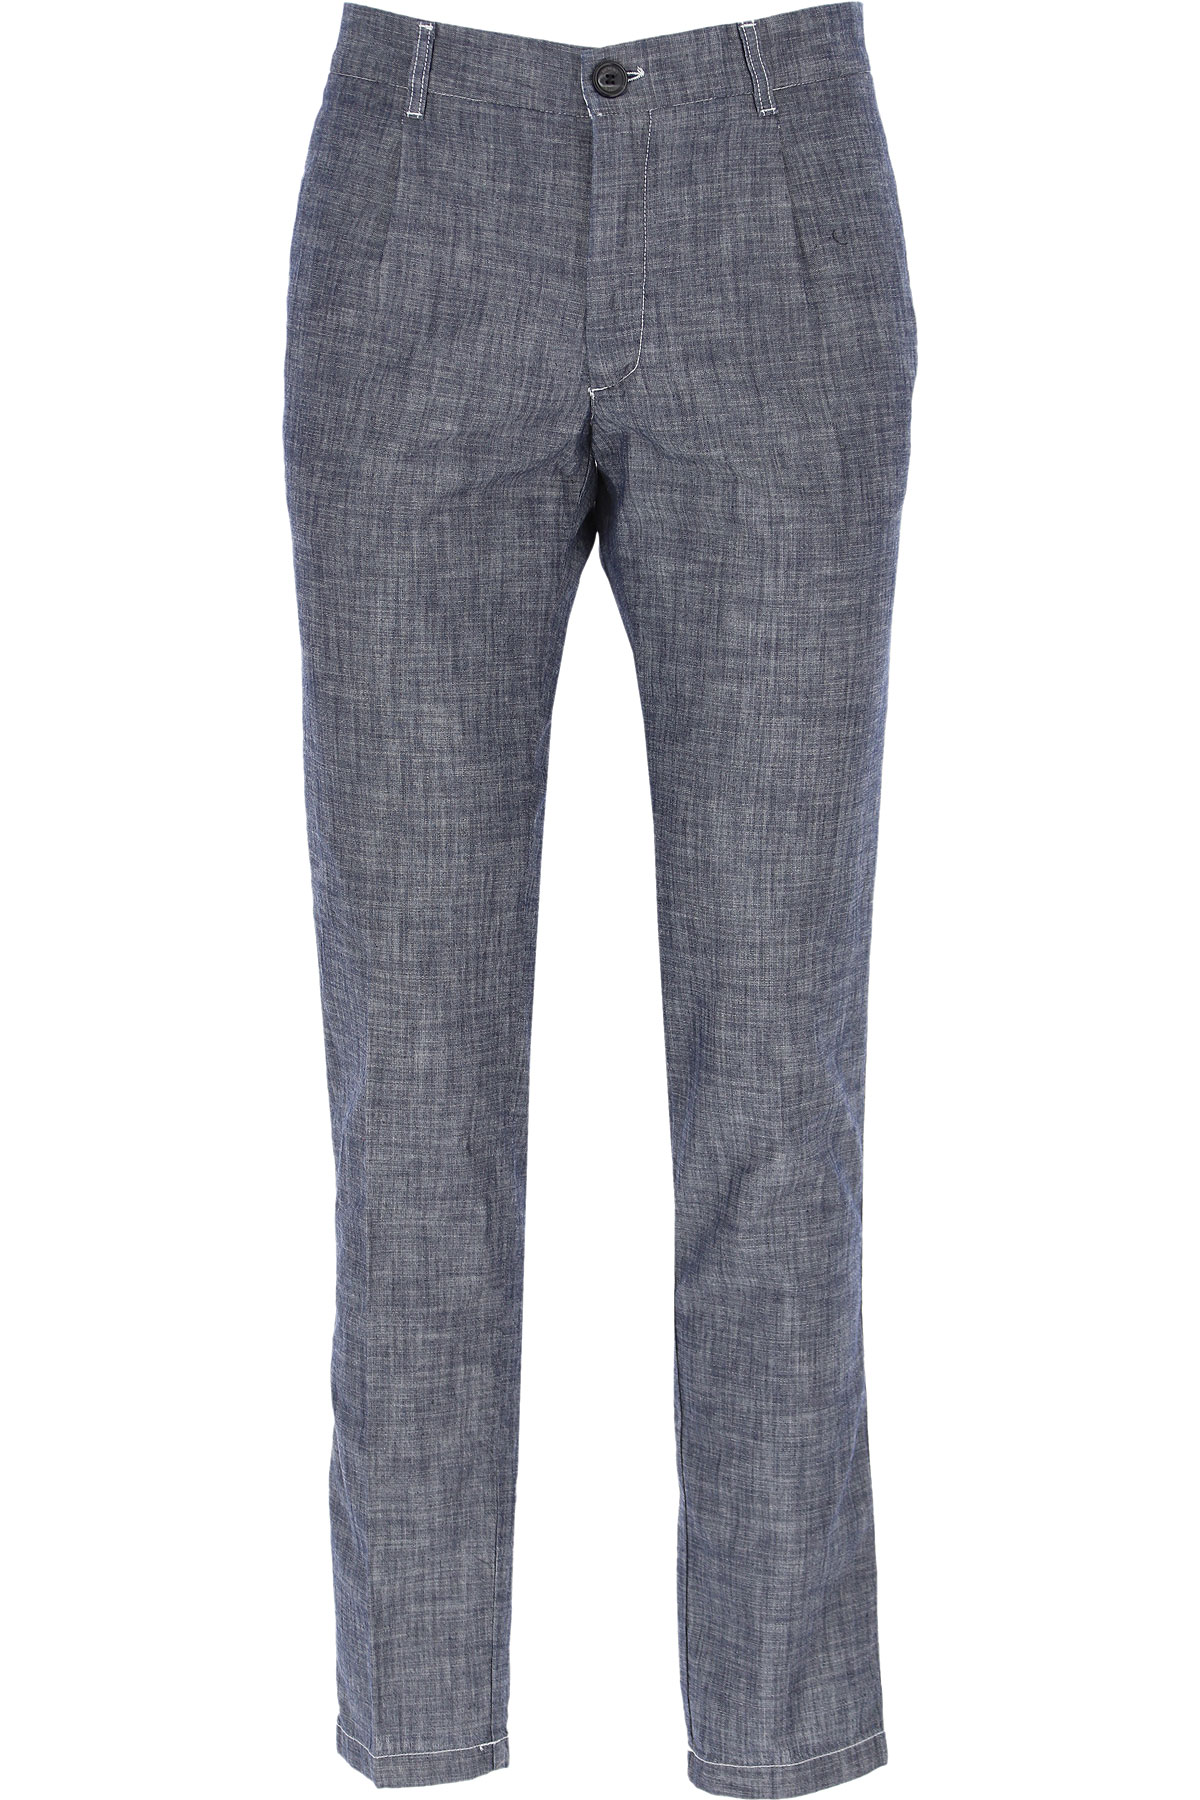 J.W. Brine Pants for Men On Sale, Denim, Cotton, 2019, 32 36 38 40